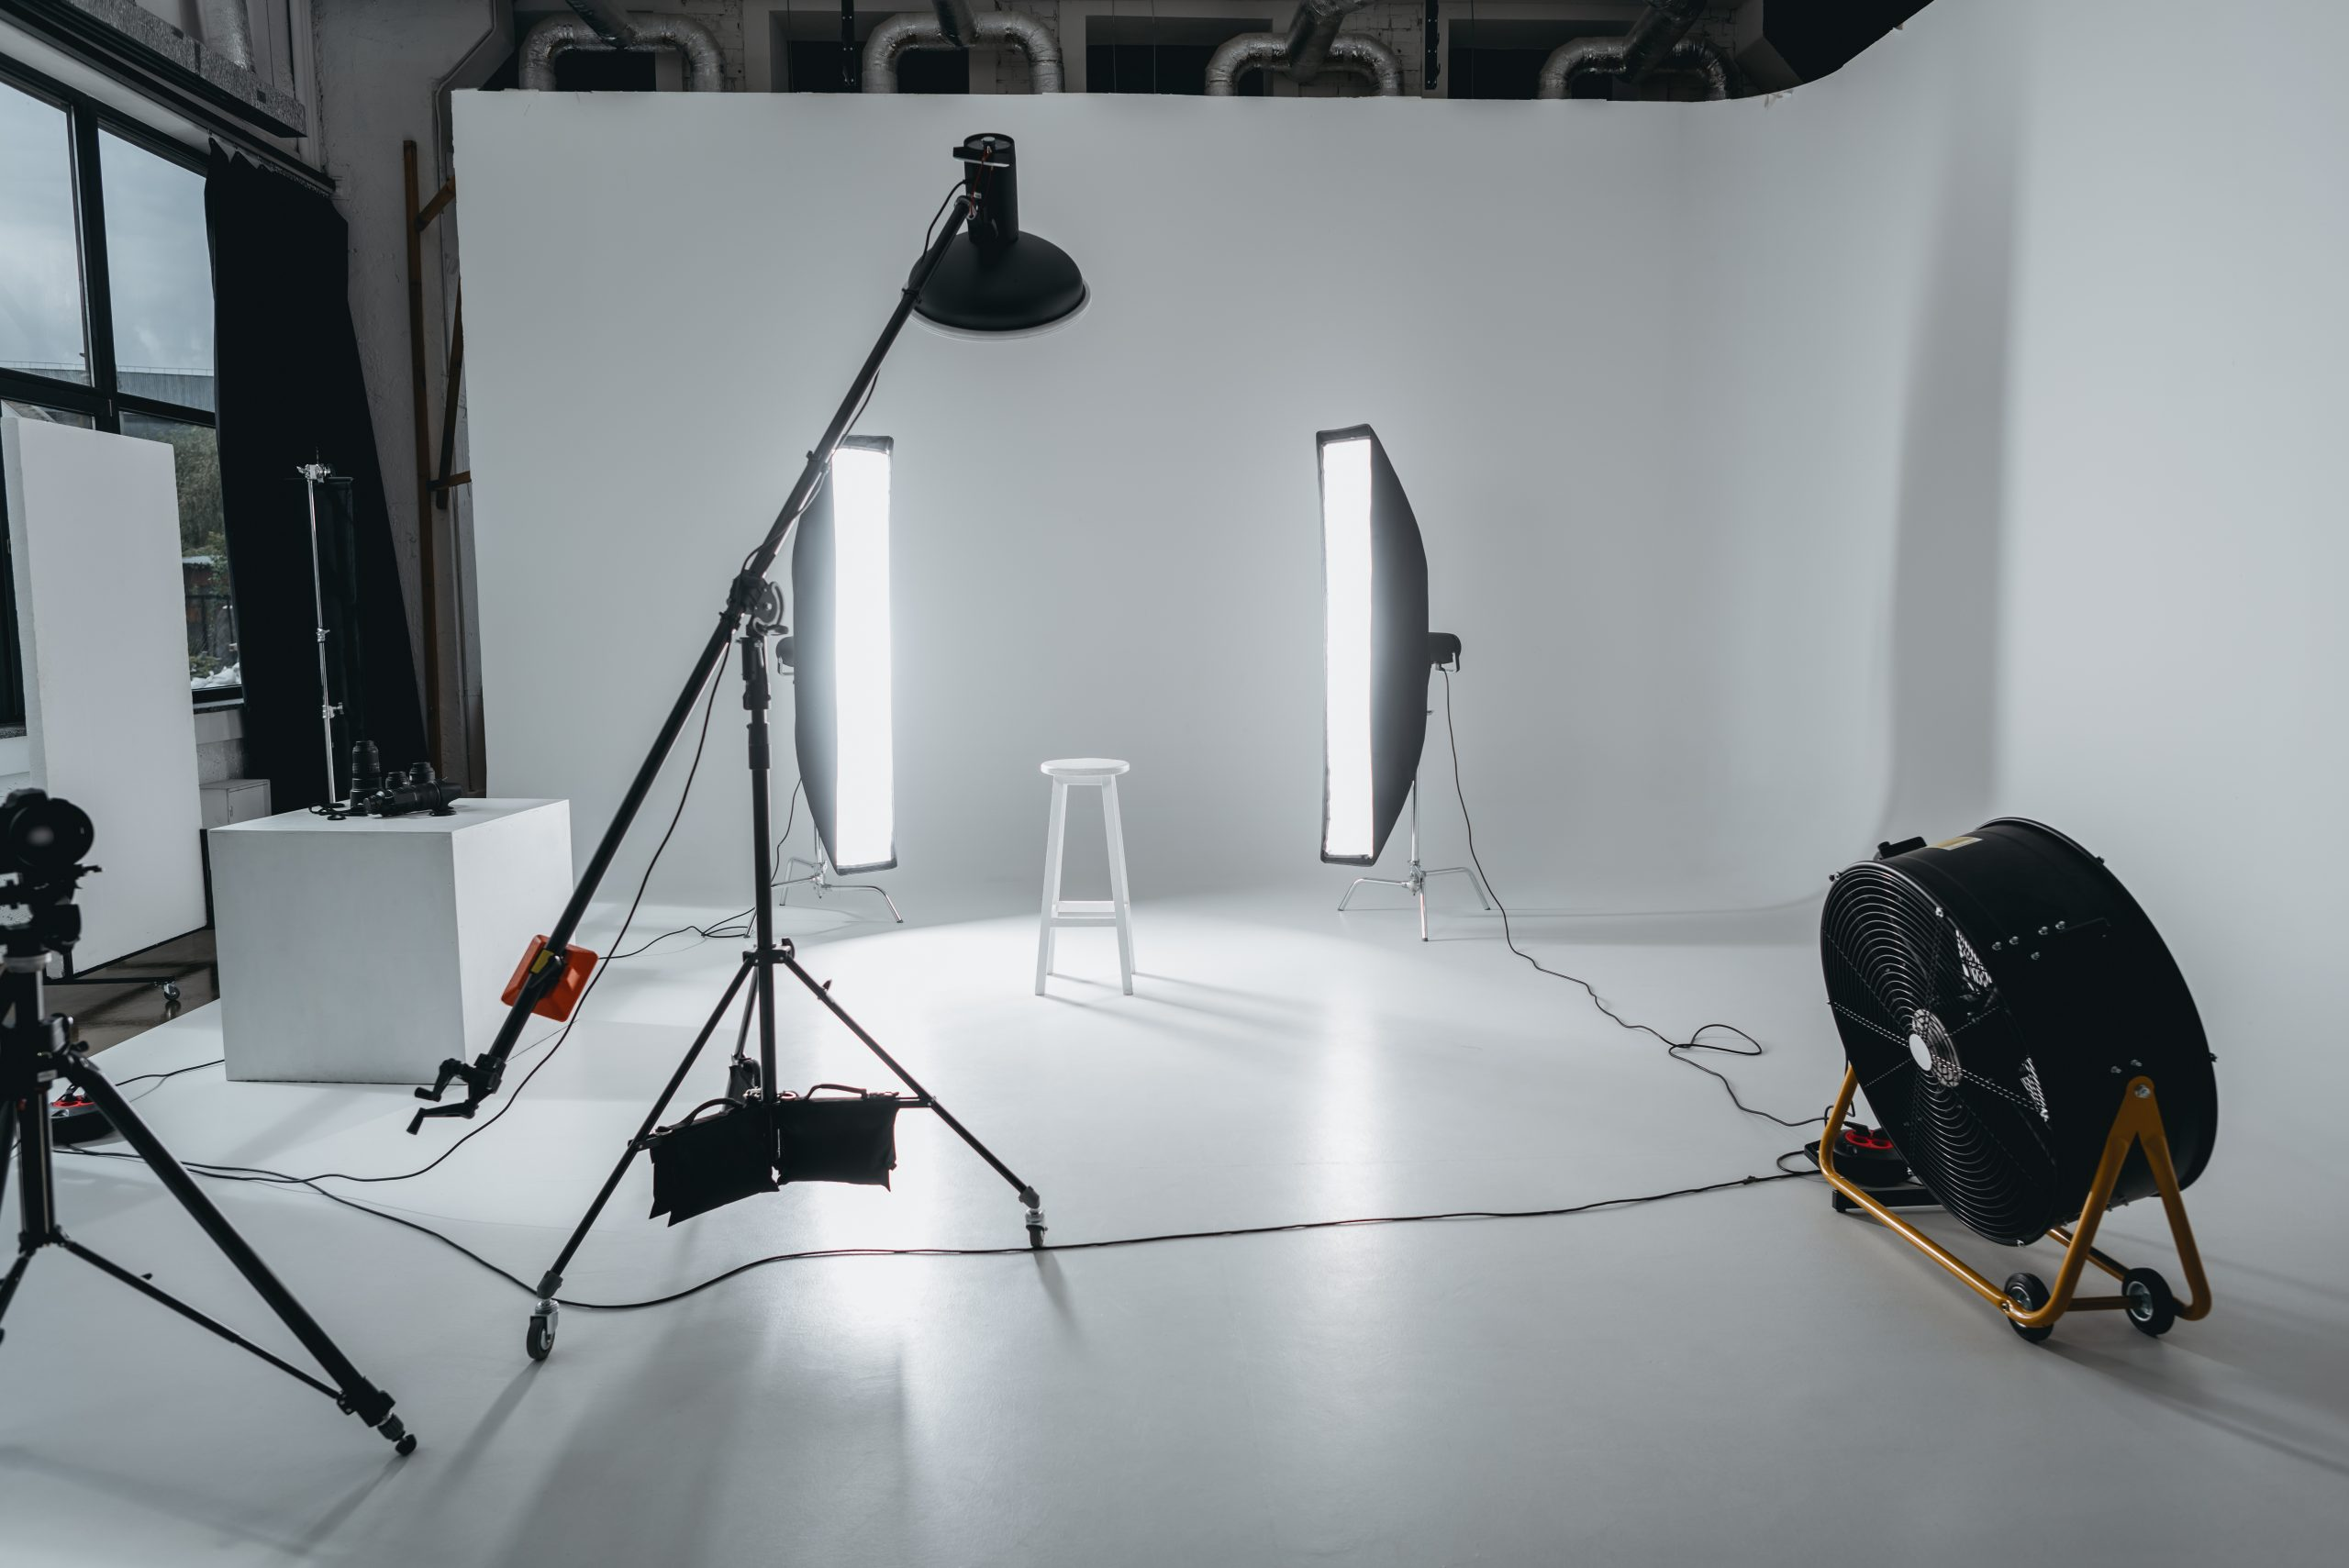 home photography studio setup - lighting equipment